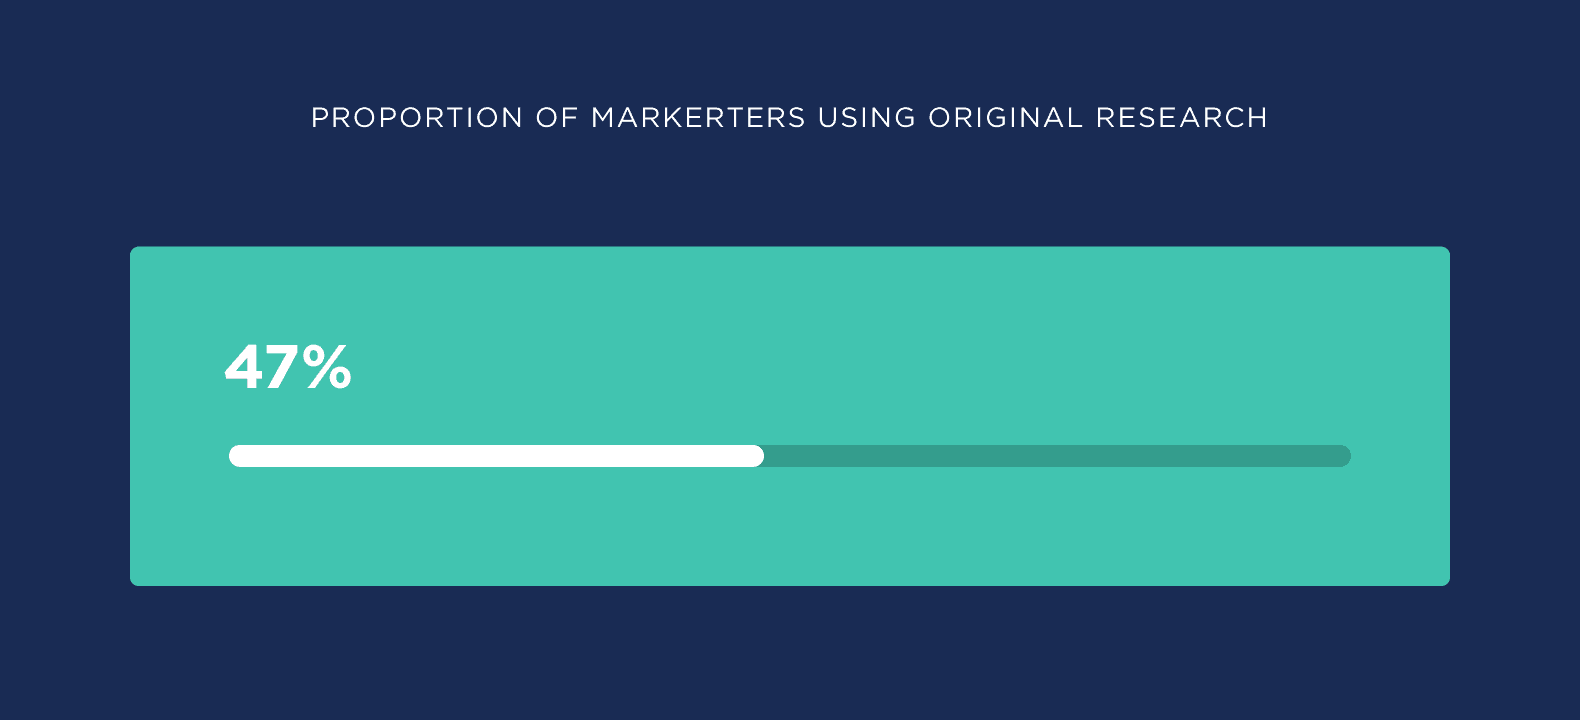 Proportion of marketers using original research